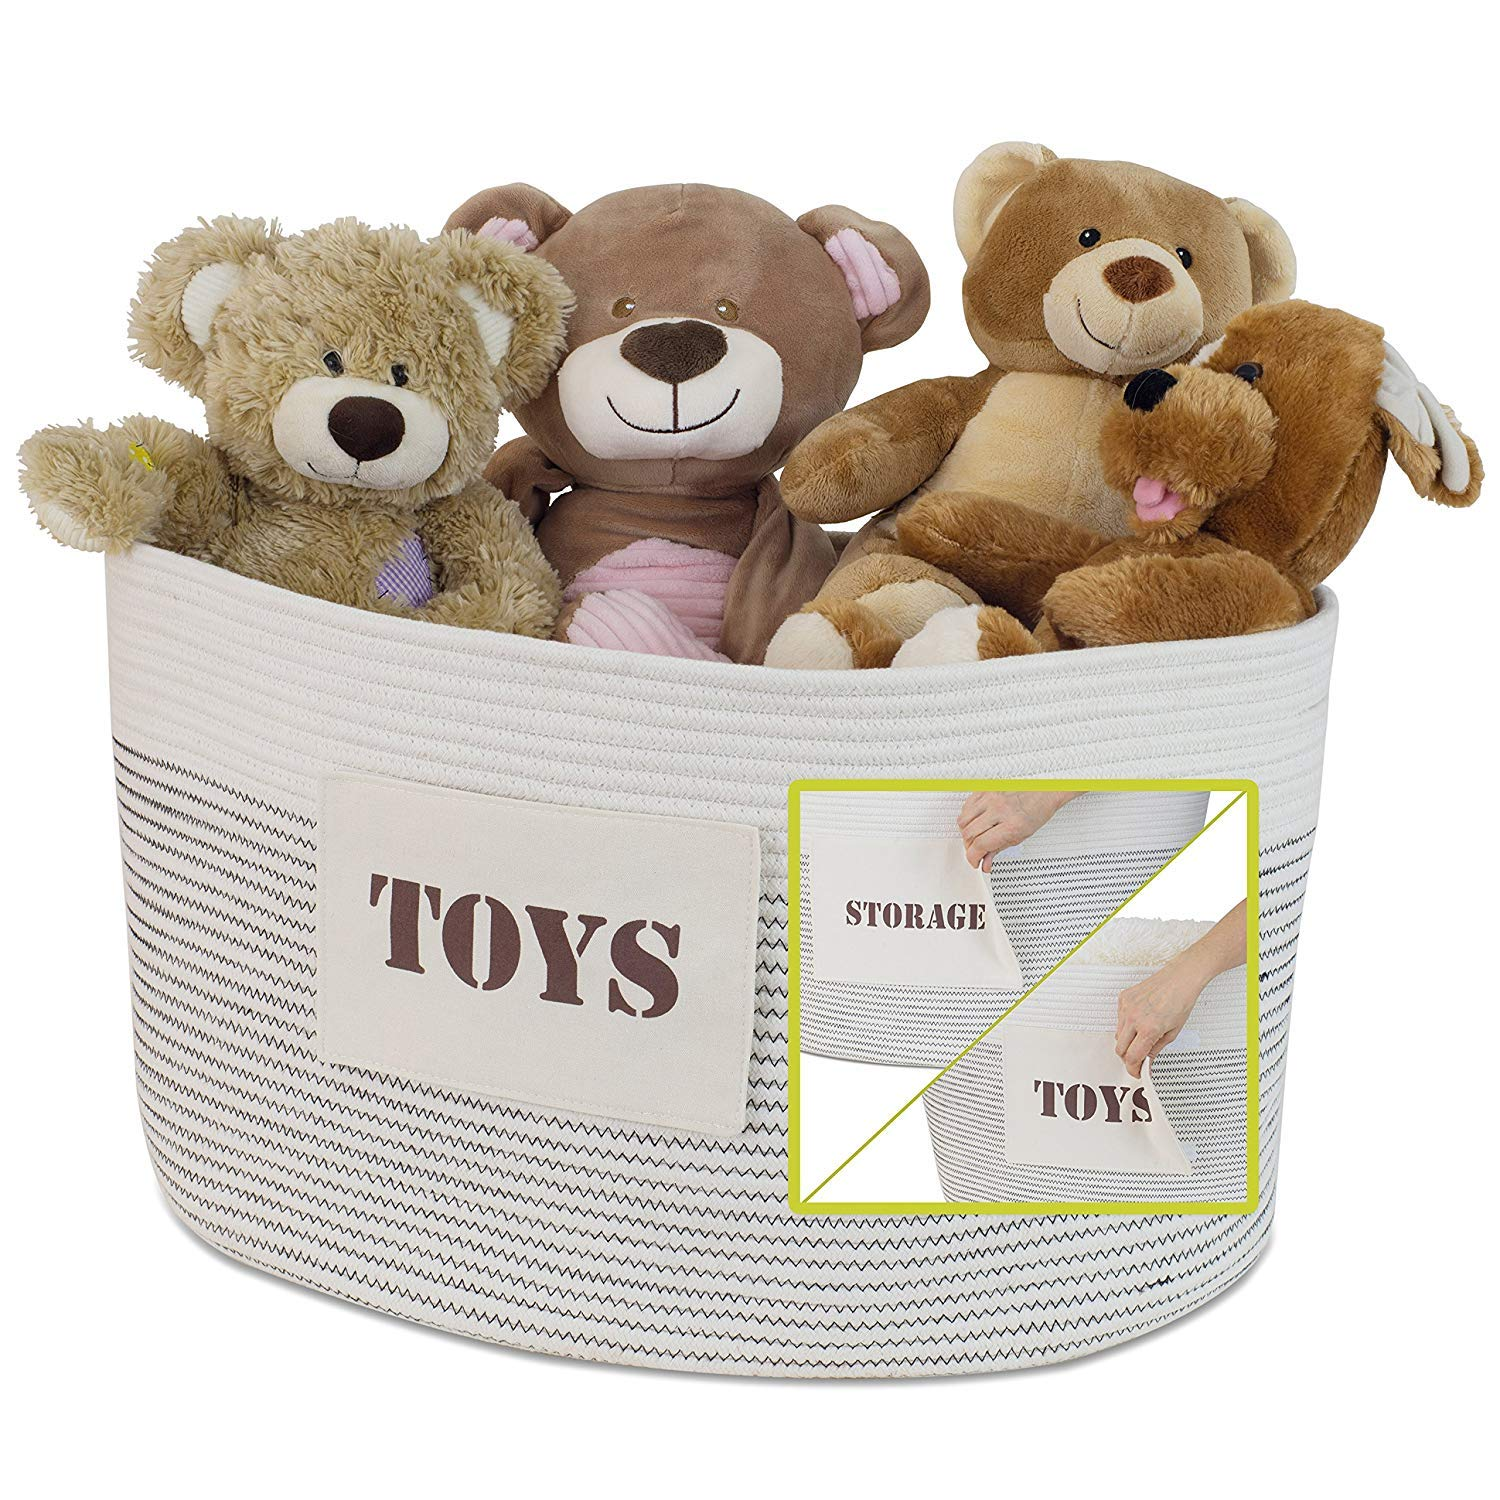 Emopeak Storage Basket - Cotton Rope with STORAGE and TOYS Labels, Beautiful Color Design, Home Decor addition for Toy Storage, Blankets, Laundry, Games by Emopeak